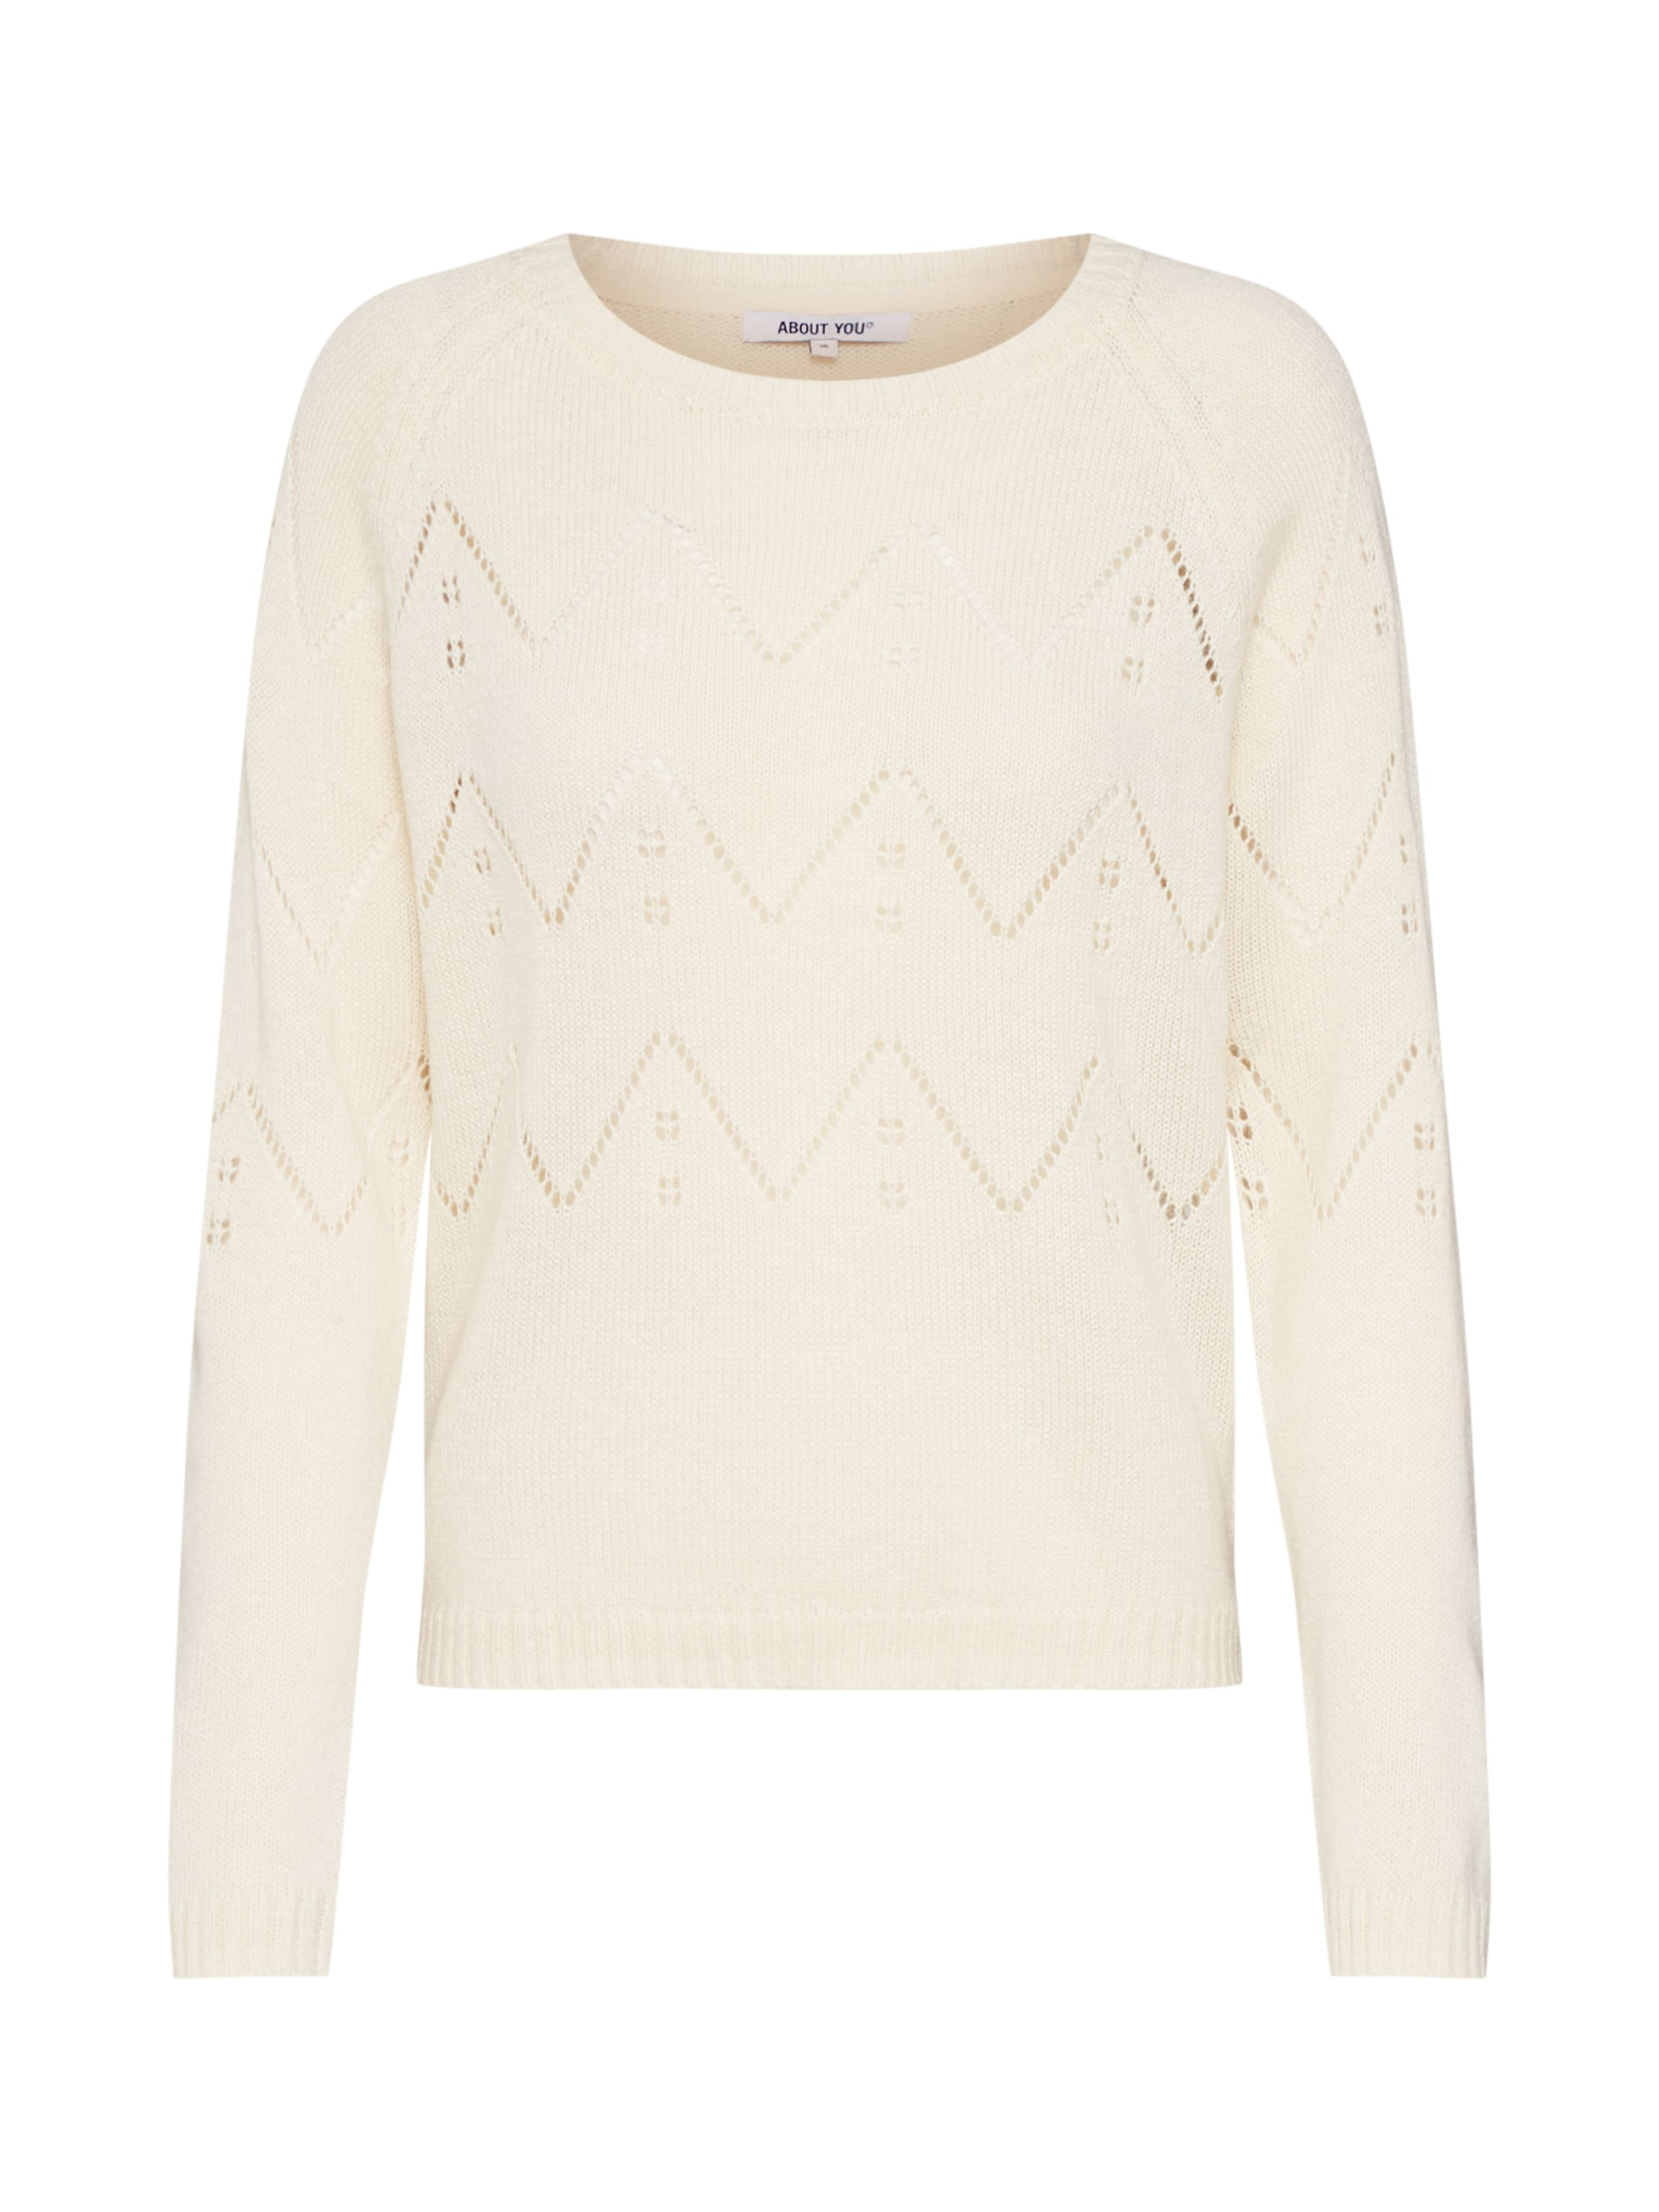 Damen ABOUT YOU Pullover 'Female' creme,  beige | 04063062845398